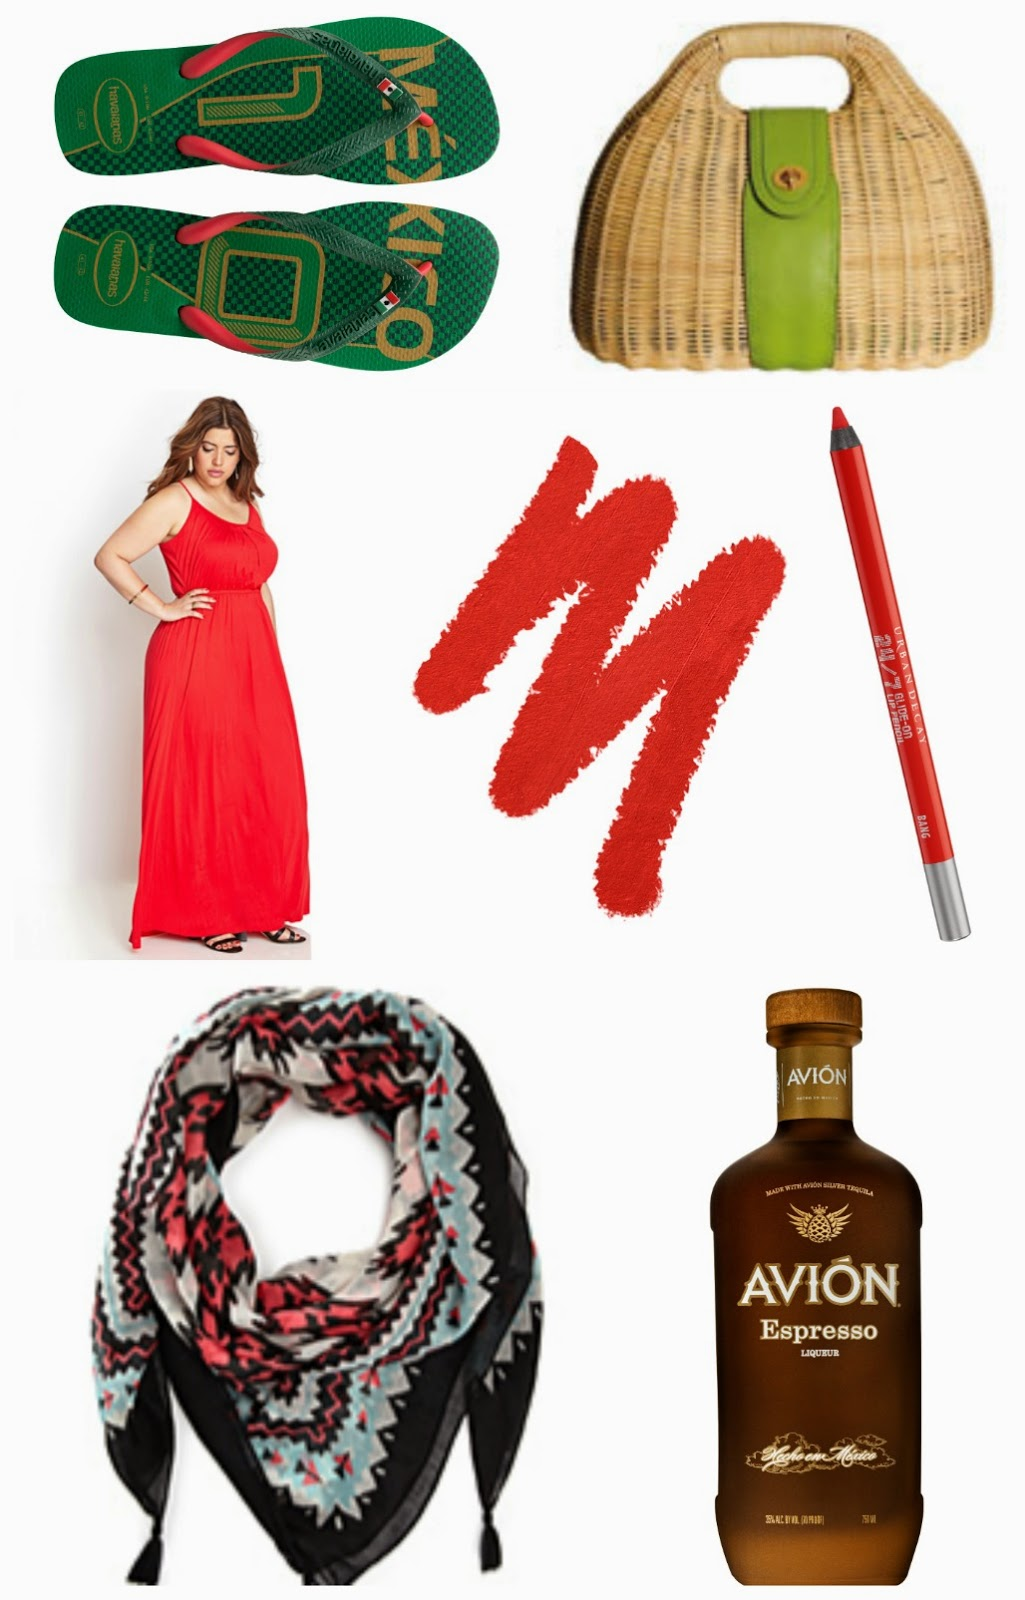 team mexico, world cup, style, fifa, avion, tequila, havaianas, cid style file